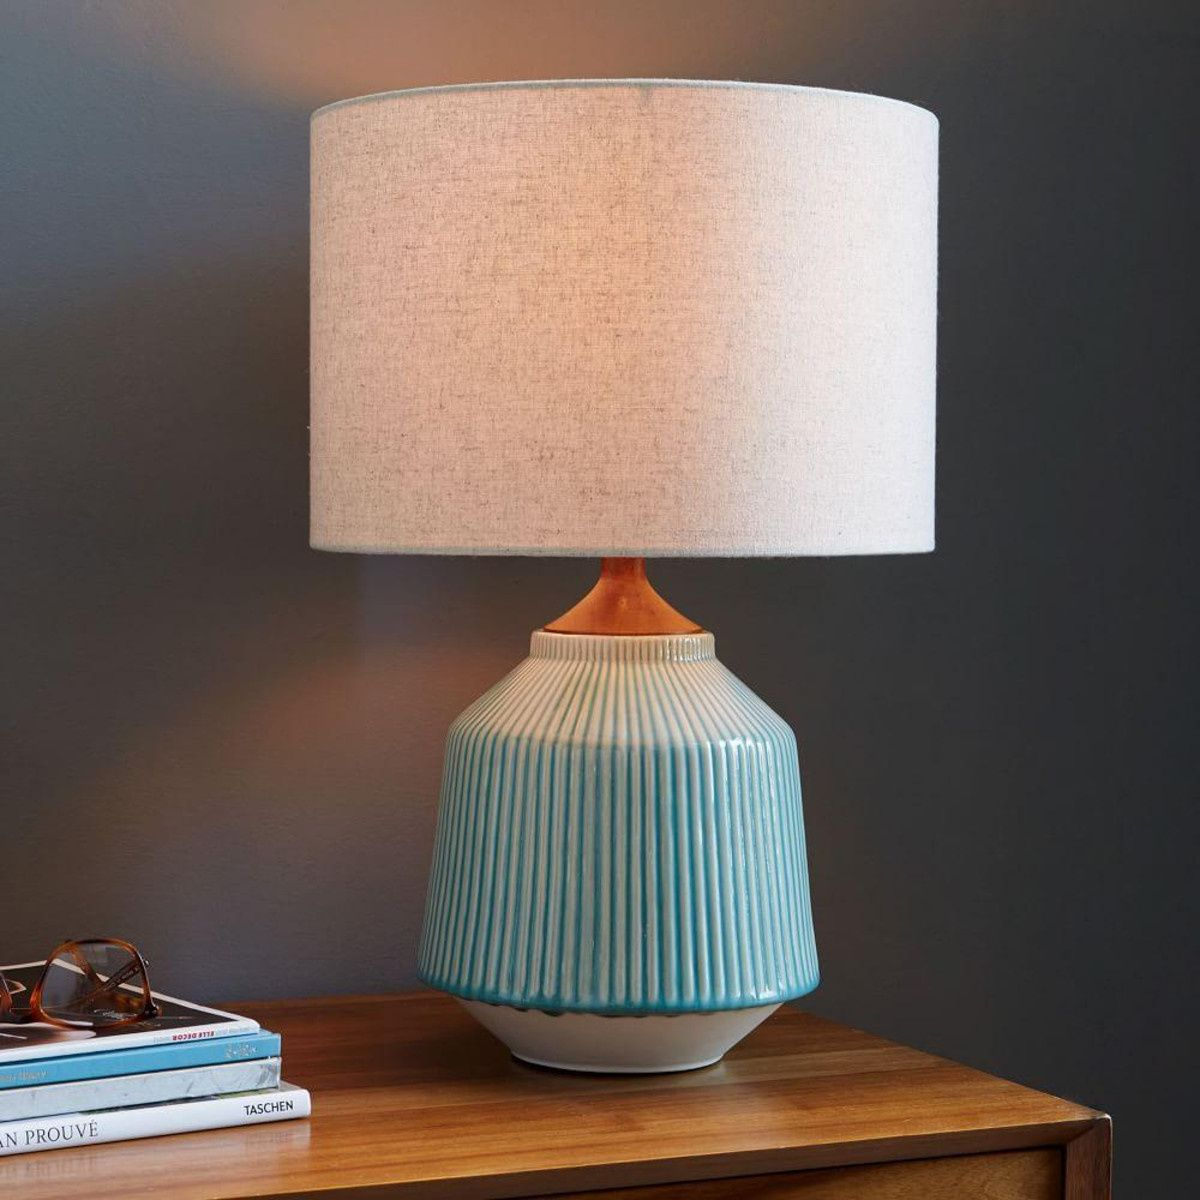 Ceramic table lamps rustic home office furniture check more at buy roar rabbit for west elm ripple large ceramic table lamp from our desk table lamps range at john lewis mozeypictures Gallery